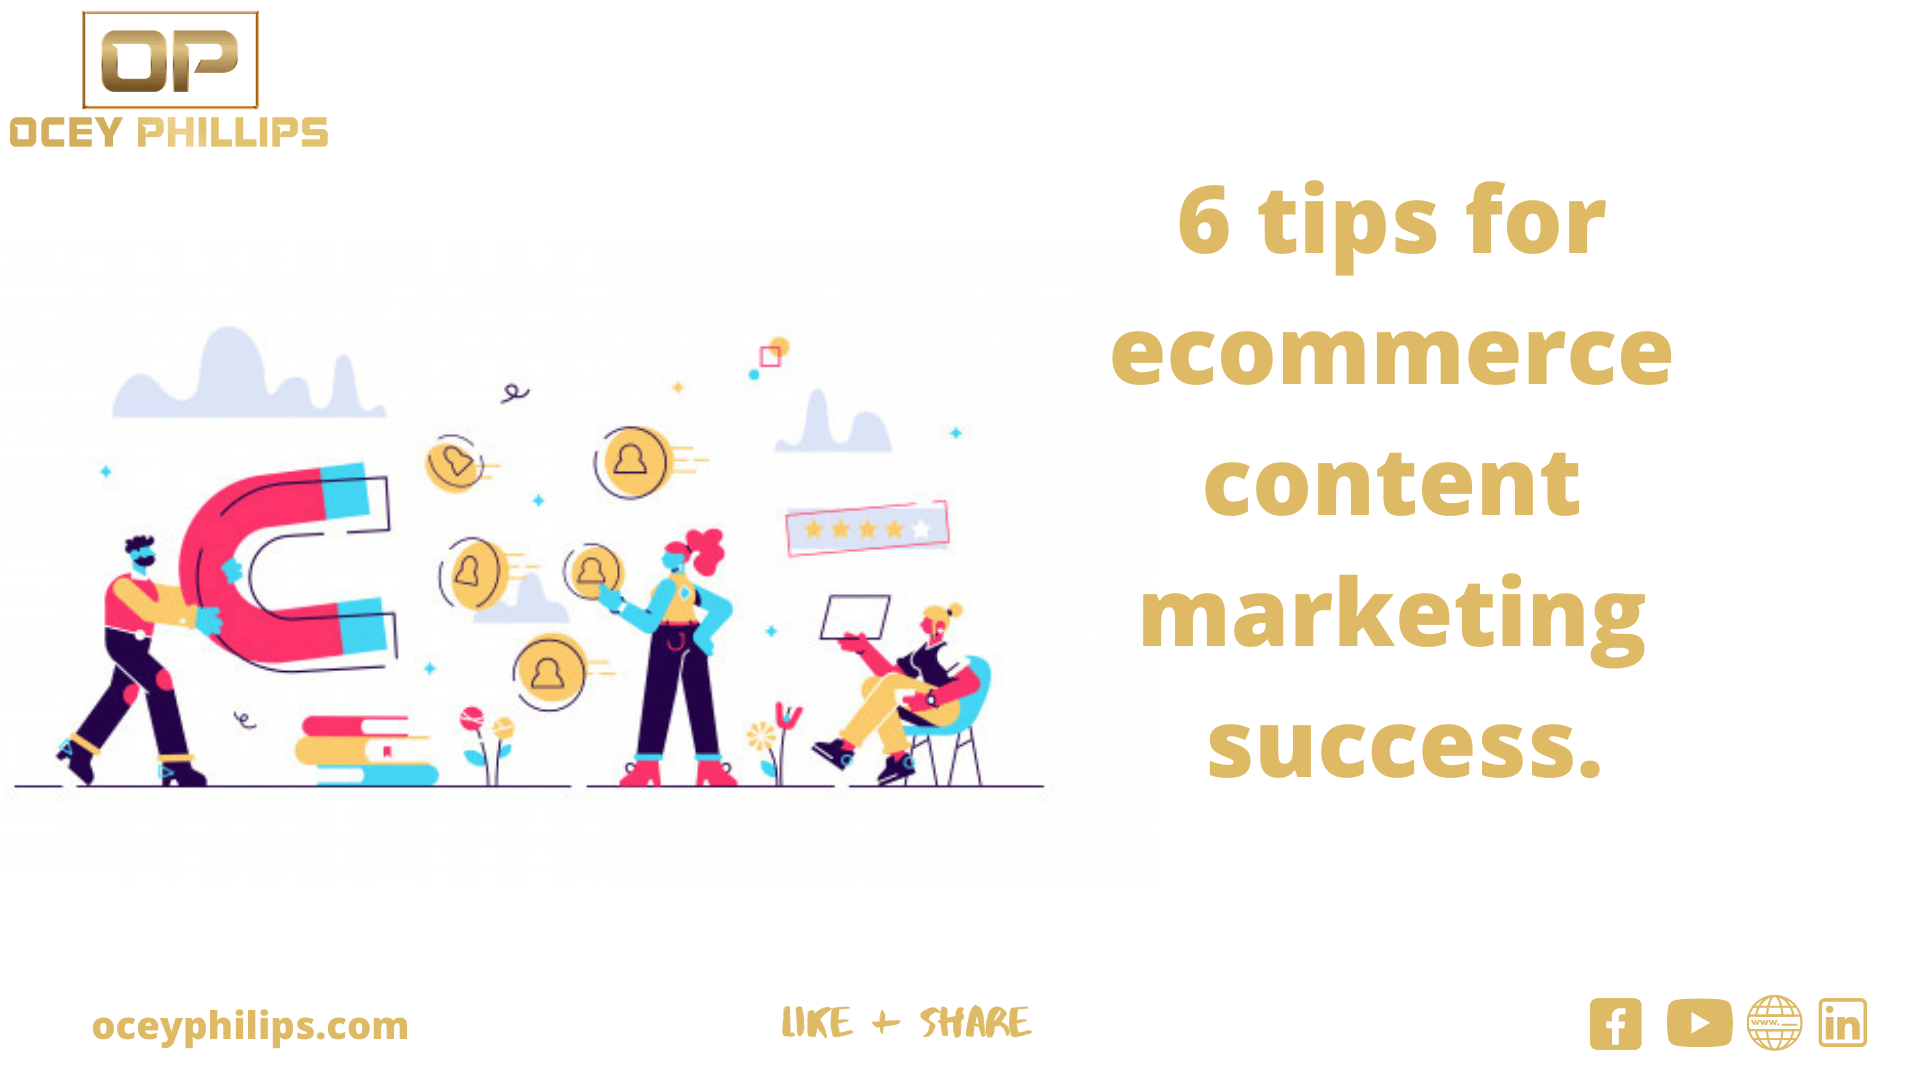 6 tips for ecommerce content marketing success